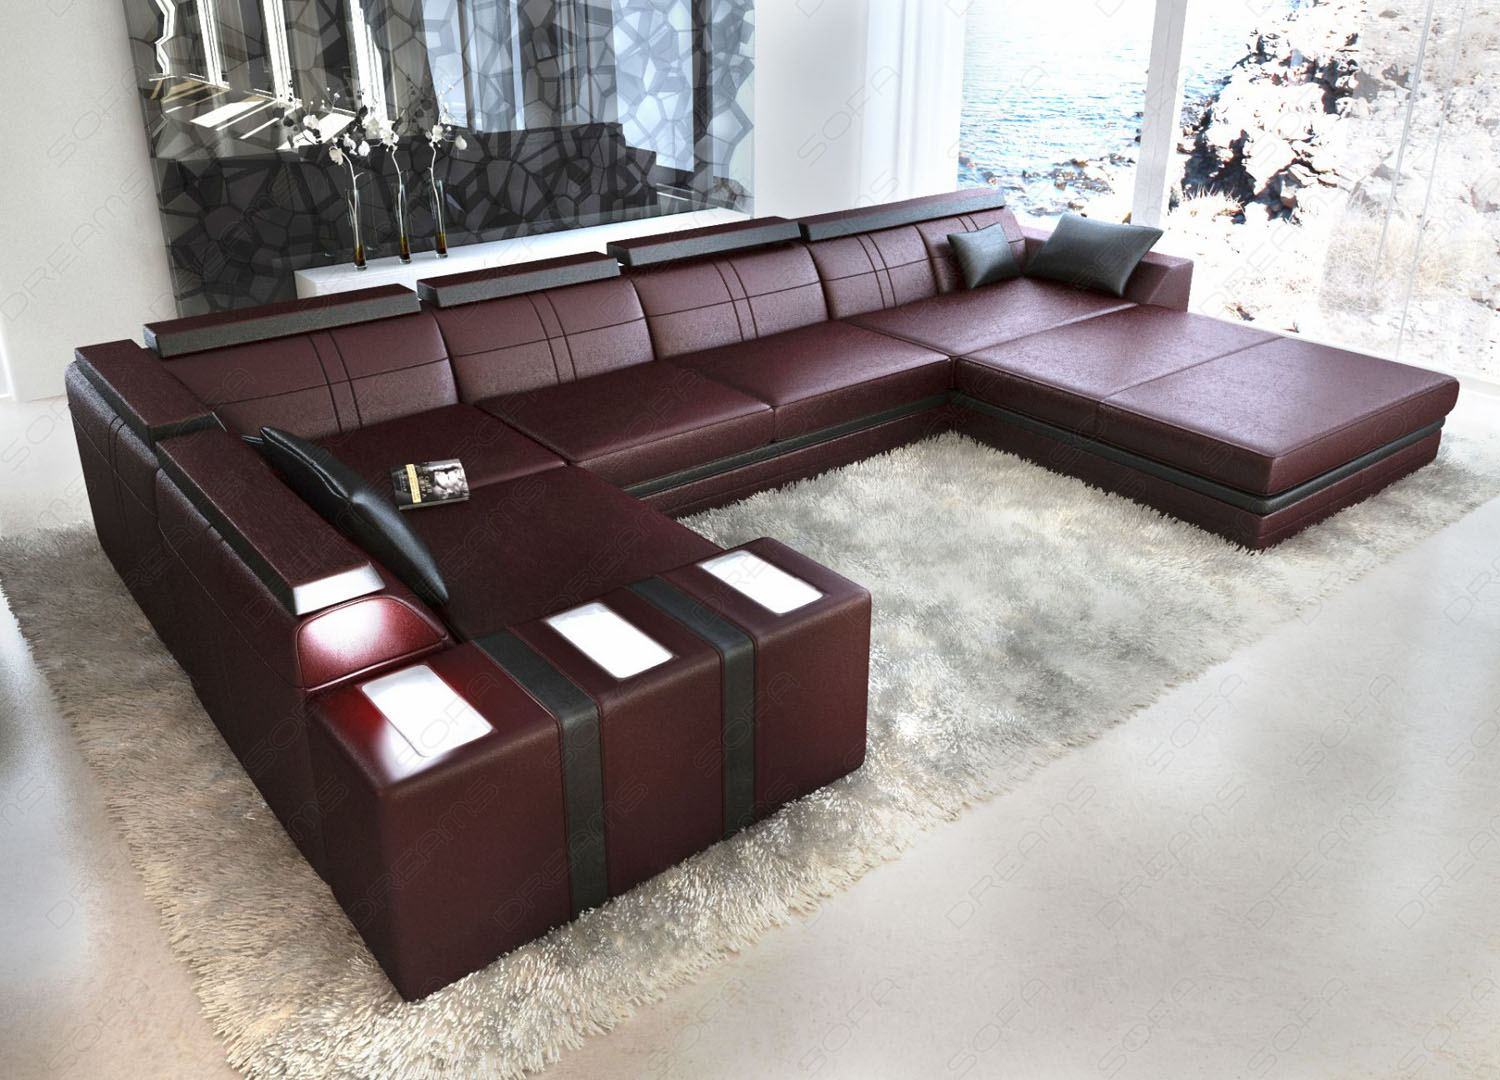 leather sofa asti u shape burgundy black interior design. Black Bedroom Furniture Sets. Home Design Ideas